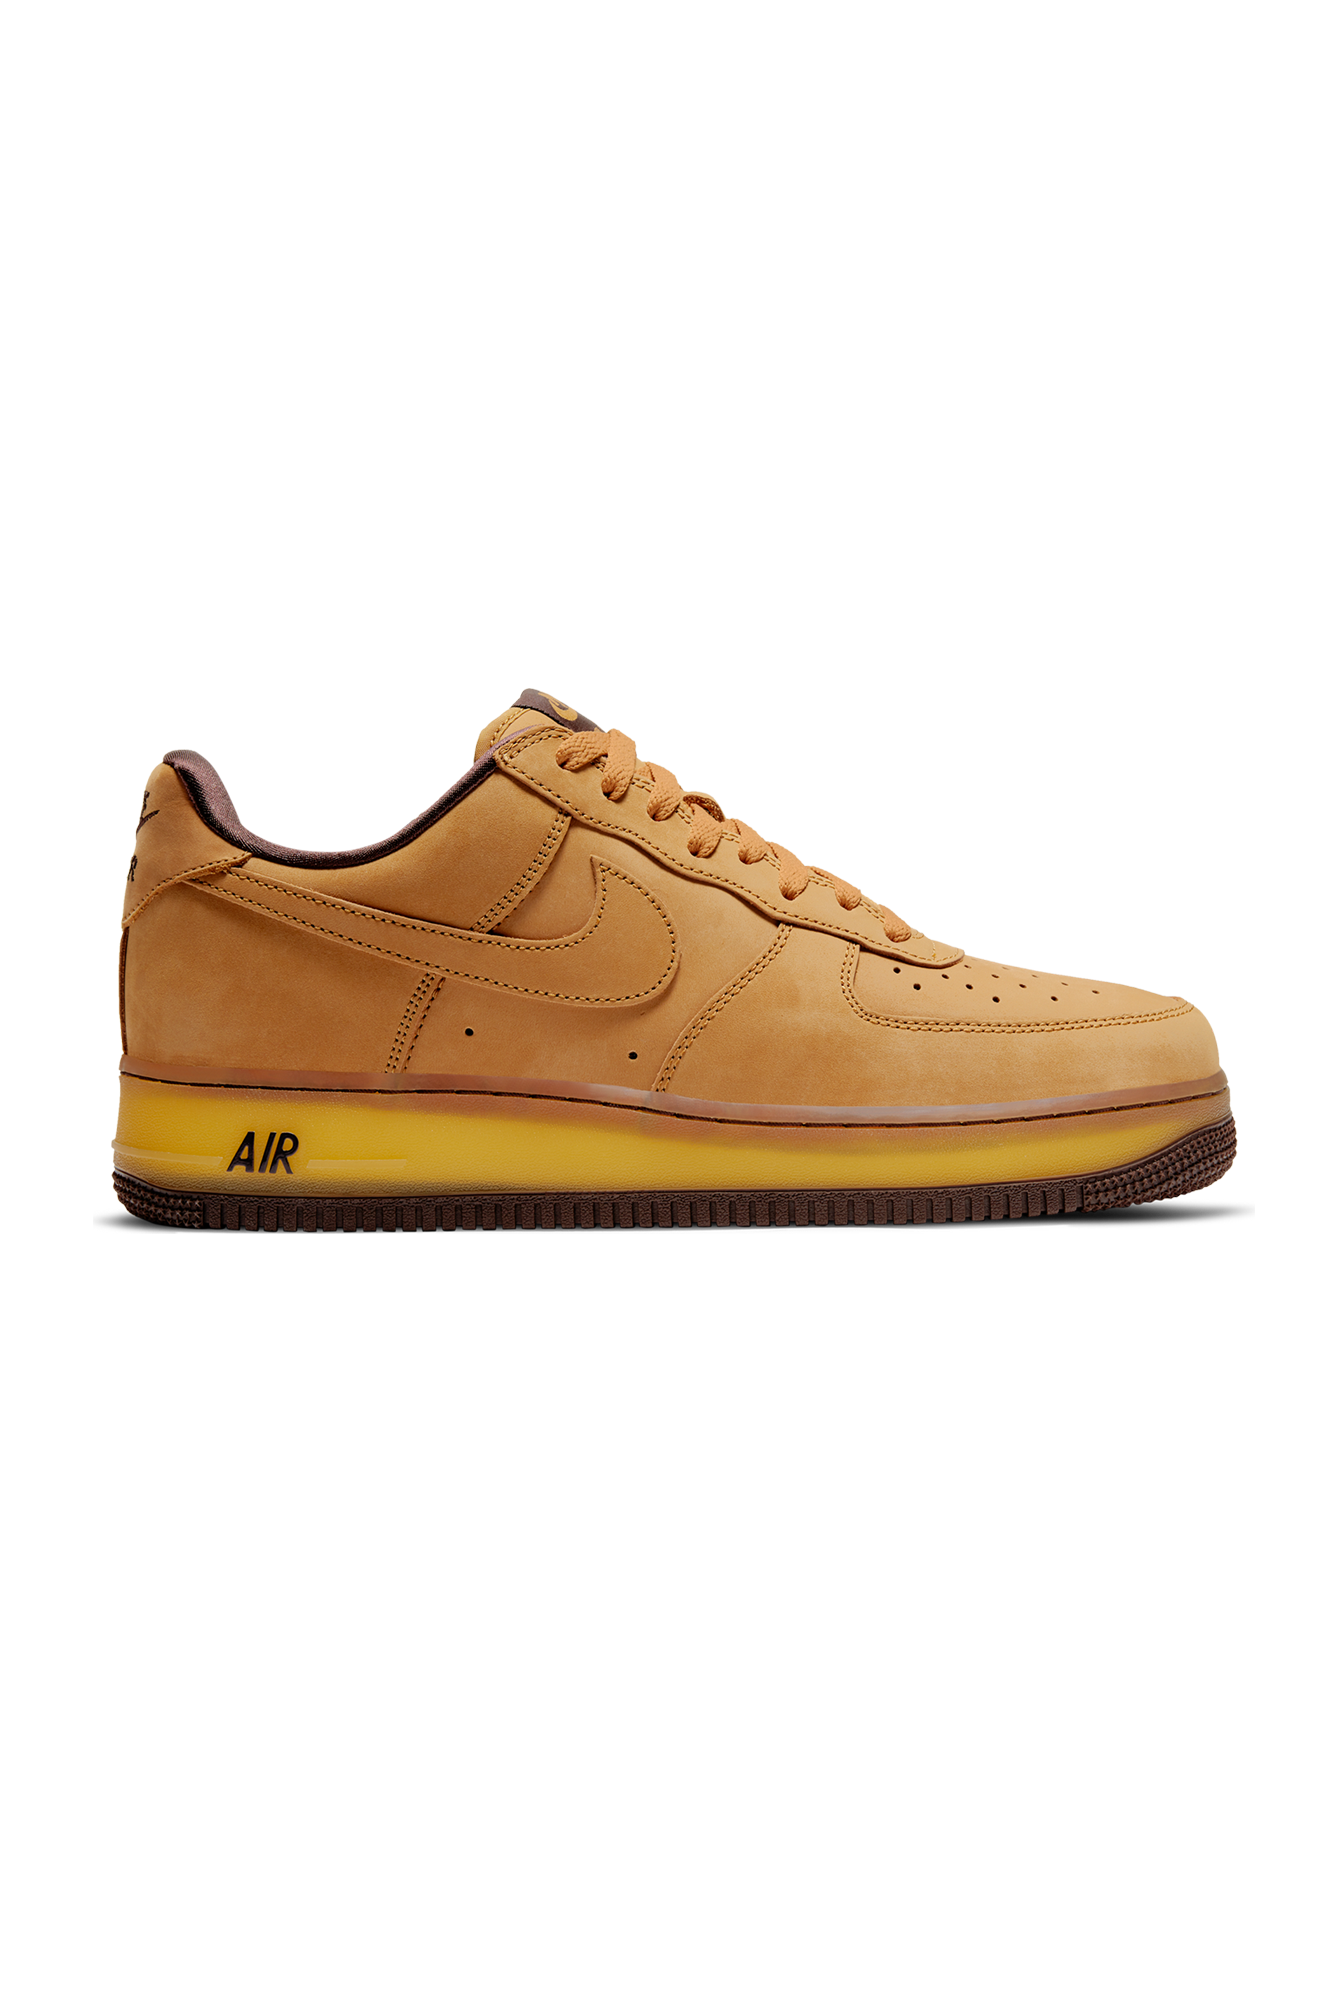 "Nike Sneakers Air Force 1 Low Retro SP ""Wheat Mocha"" Brown DC7504-#000#700#5 - One Block Down"